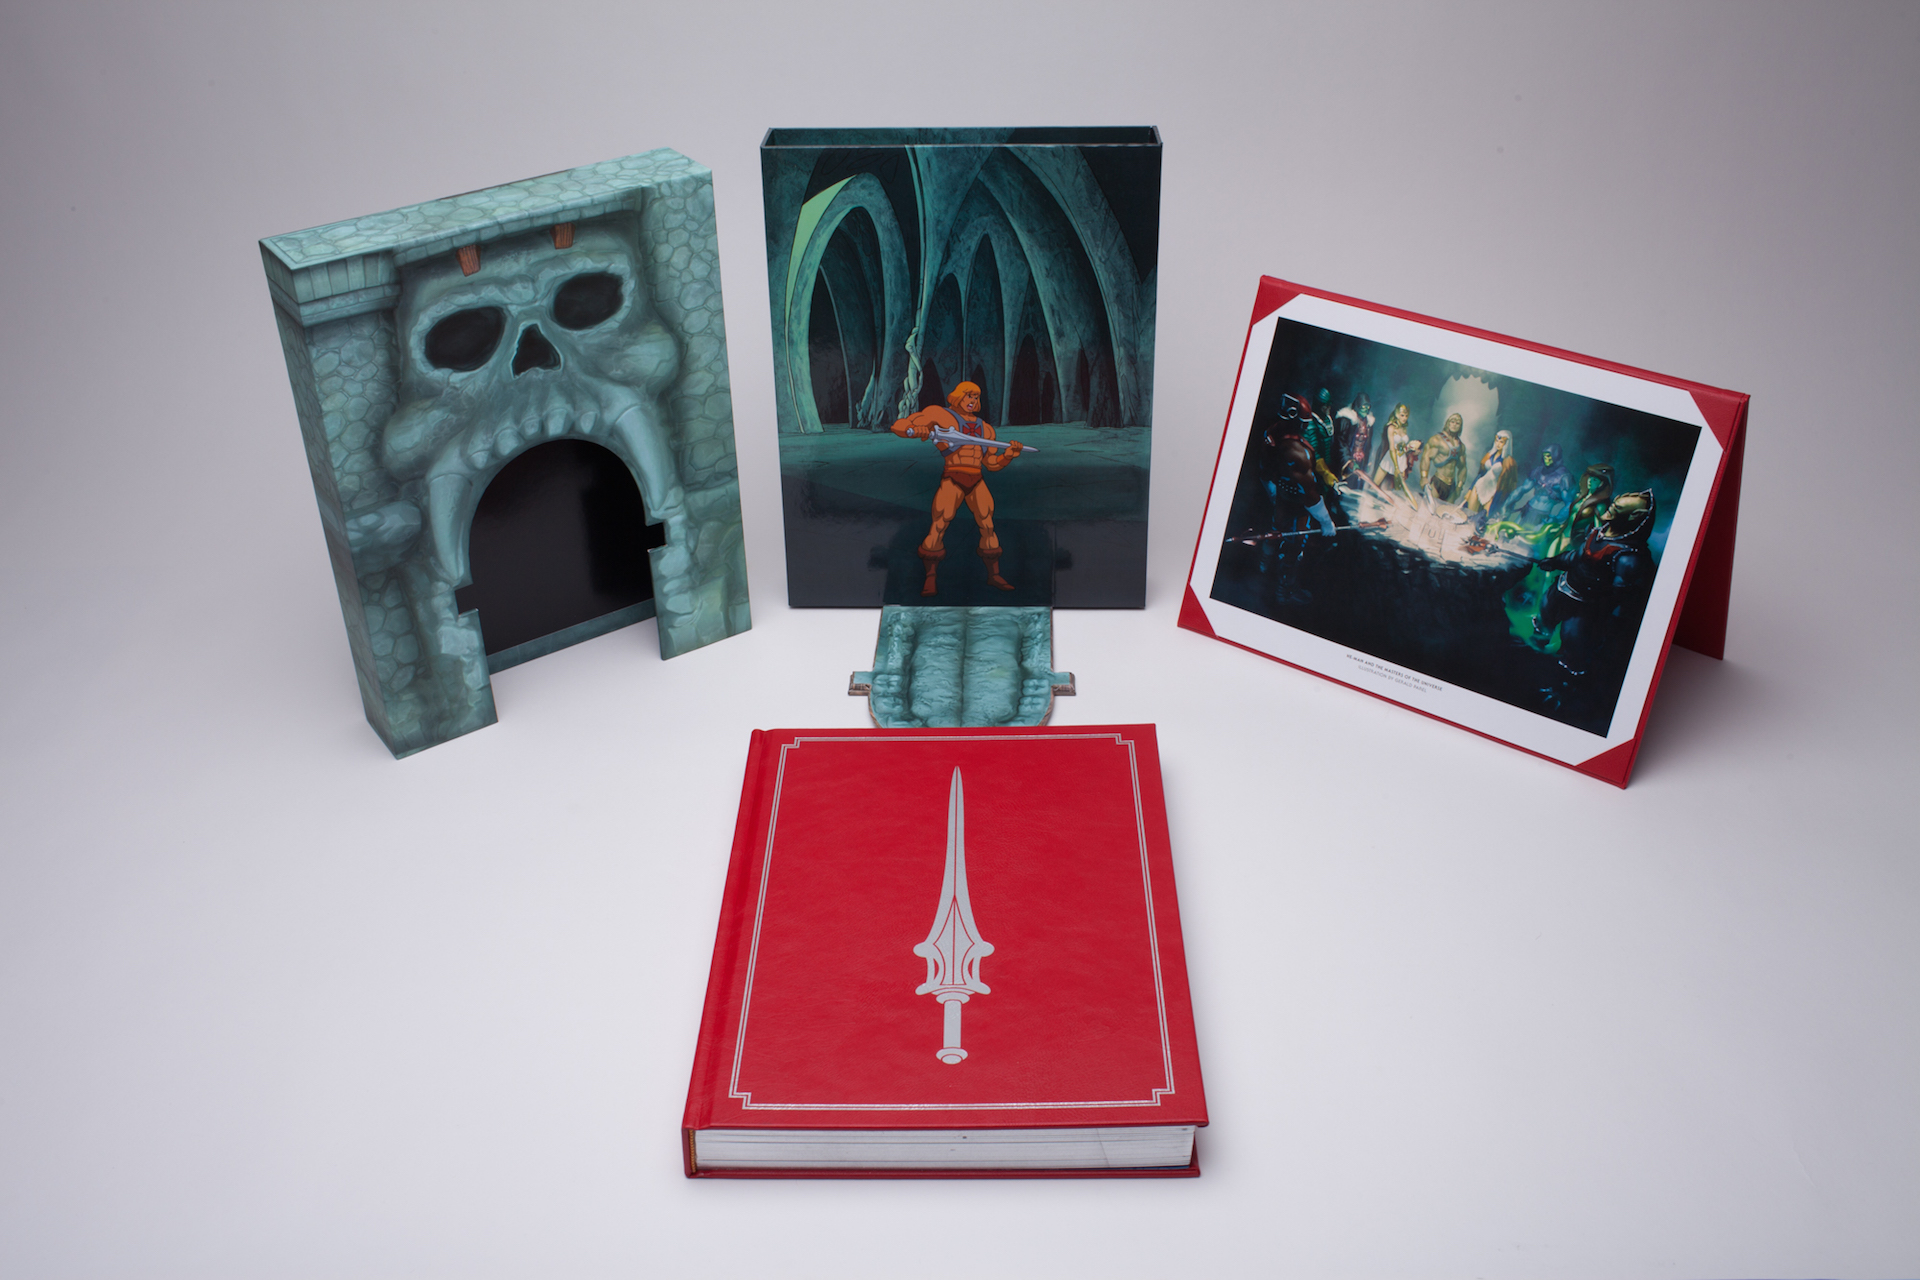 This is what a $130 He-Man art book looks like